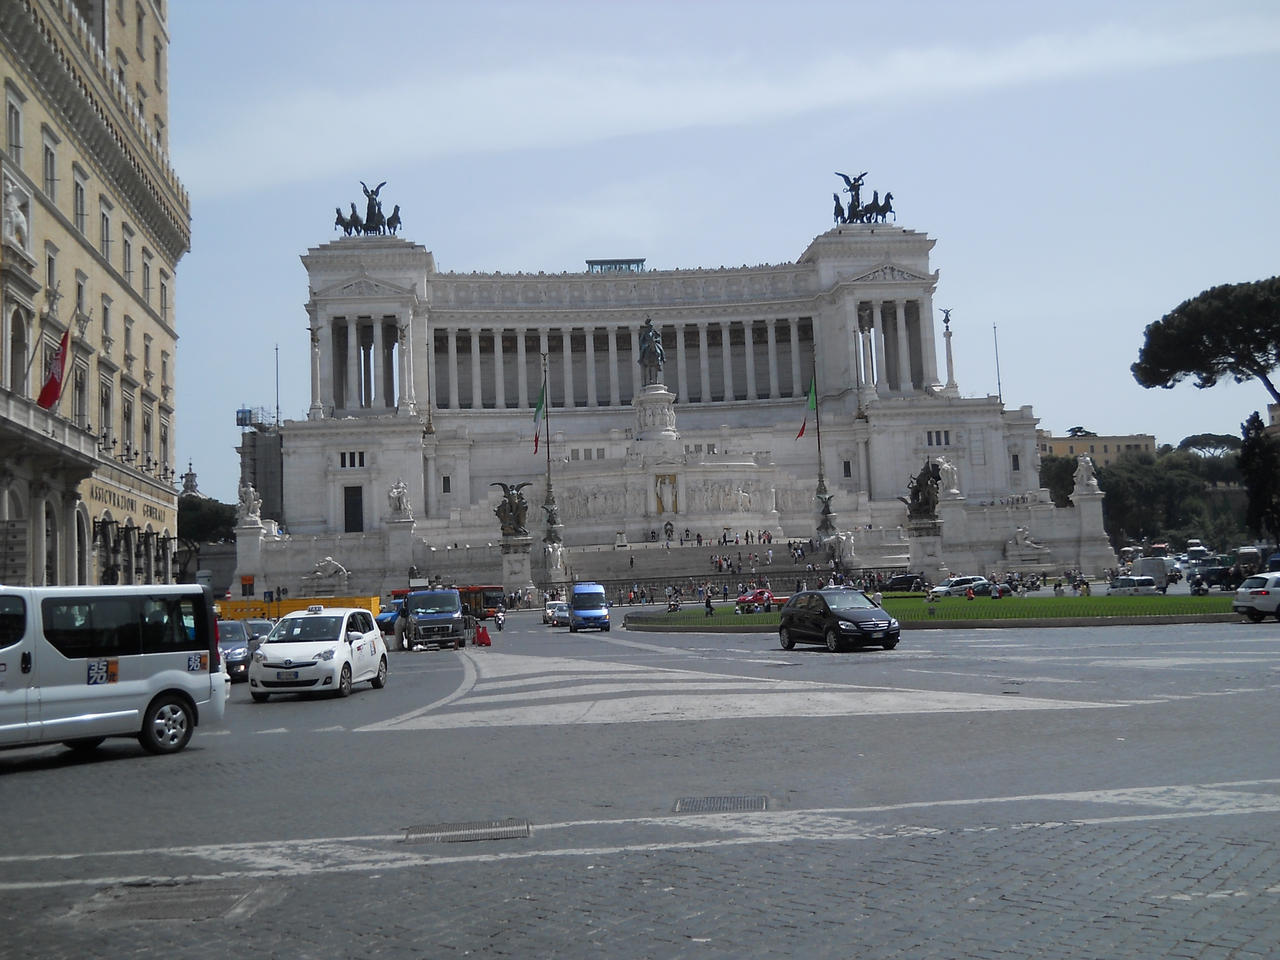 Piazza Venezia in Rome by gunseg on DeviantArt